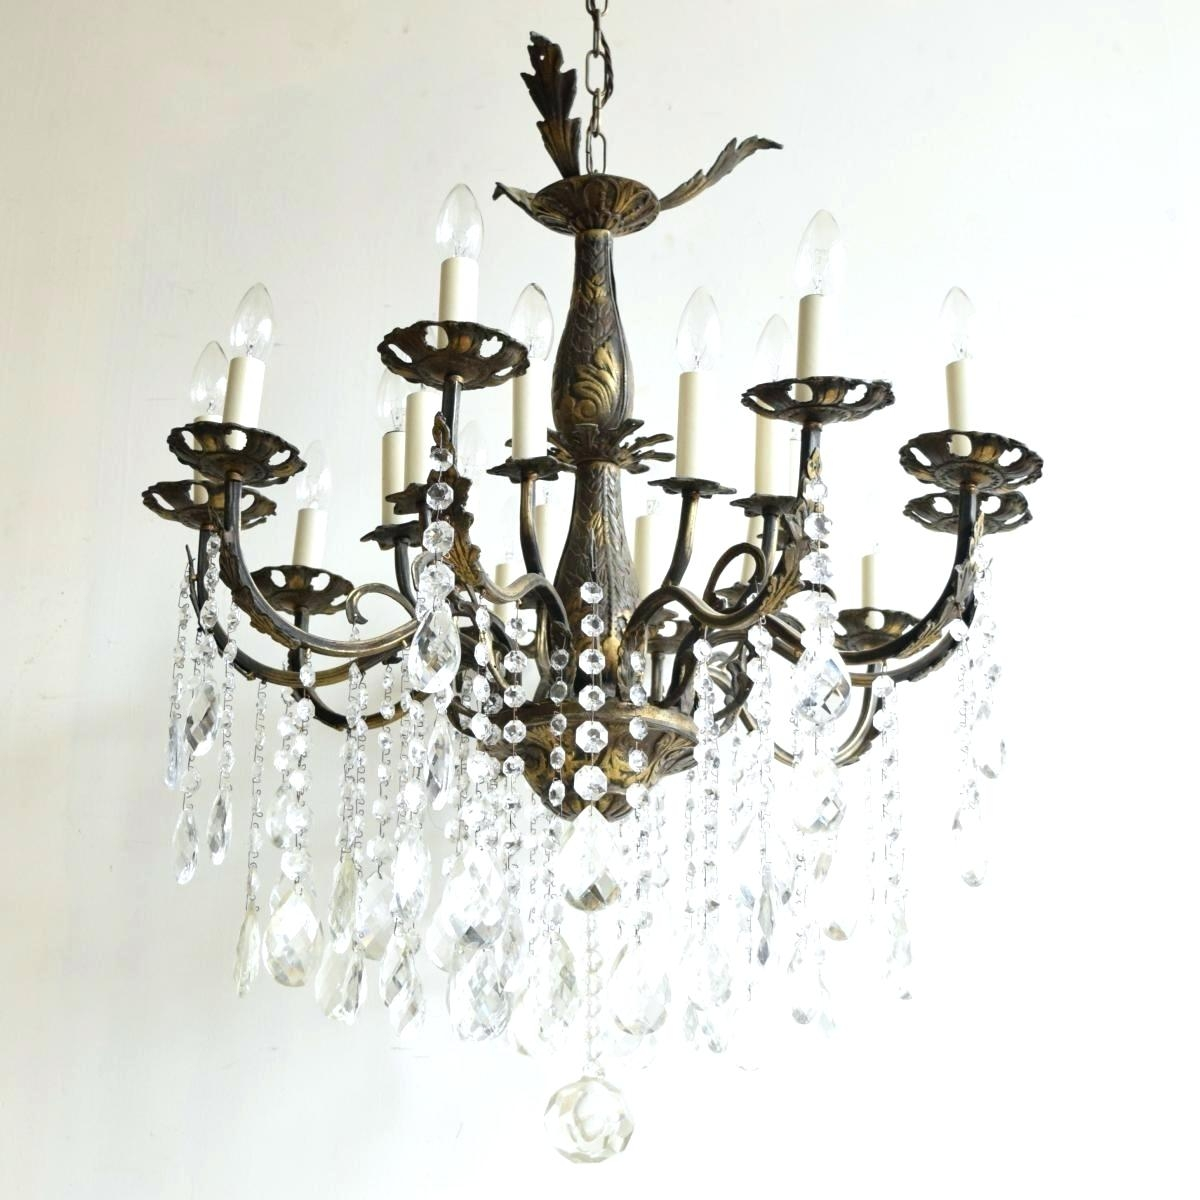 Ball Jar Chandelier Millennium Lighting Devonshire 395 In 16 Light Intended For Metal Ball Candle Chandeliers (Image 5 of 25)